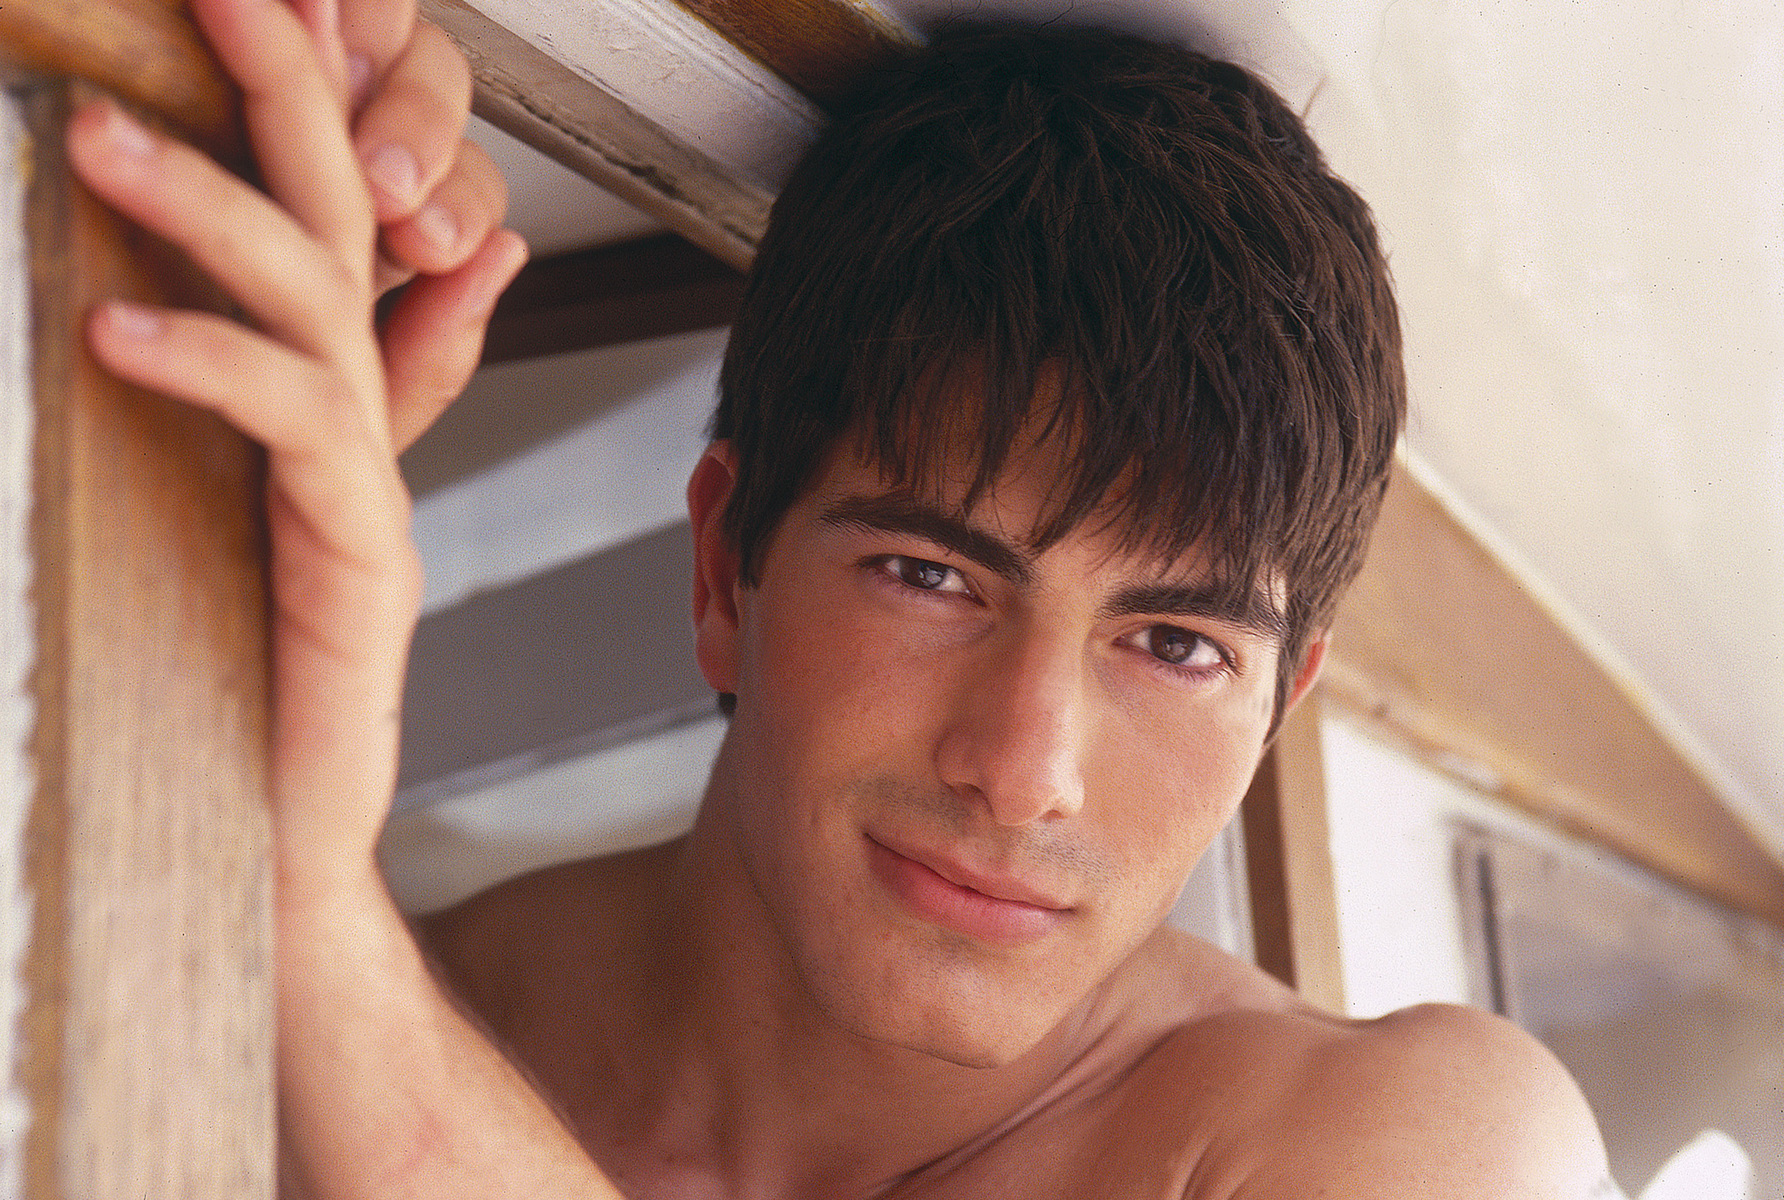 This photo is for personal use only and cannot appear in print or on line for any reason. It is the property of Soaps In Depth magazine and cannot appear in print/on line without written consent of the magazines editor in chief. 